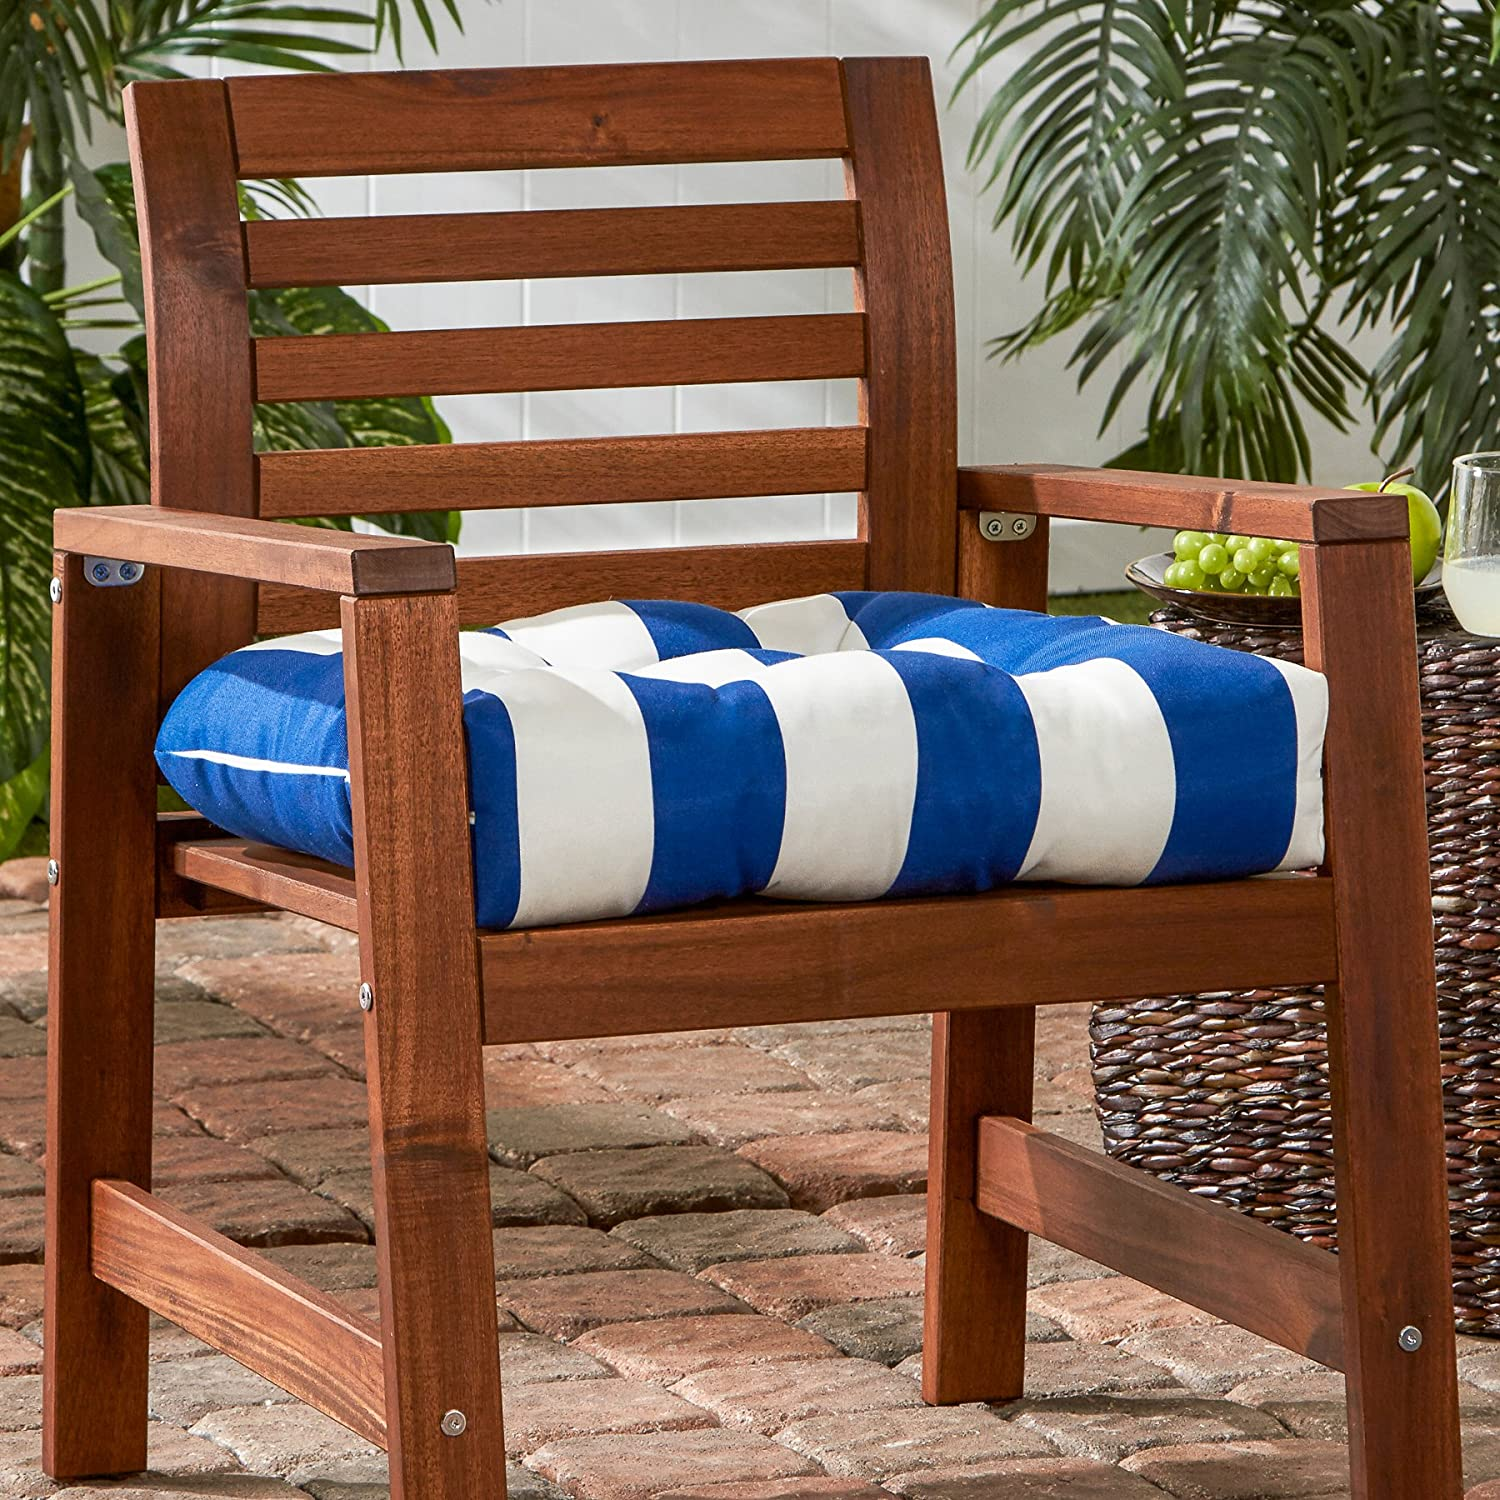 Greendale Home Fashions Indoor Outdoor Chair Cushion, 20-Inch, Cabana Blue